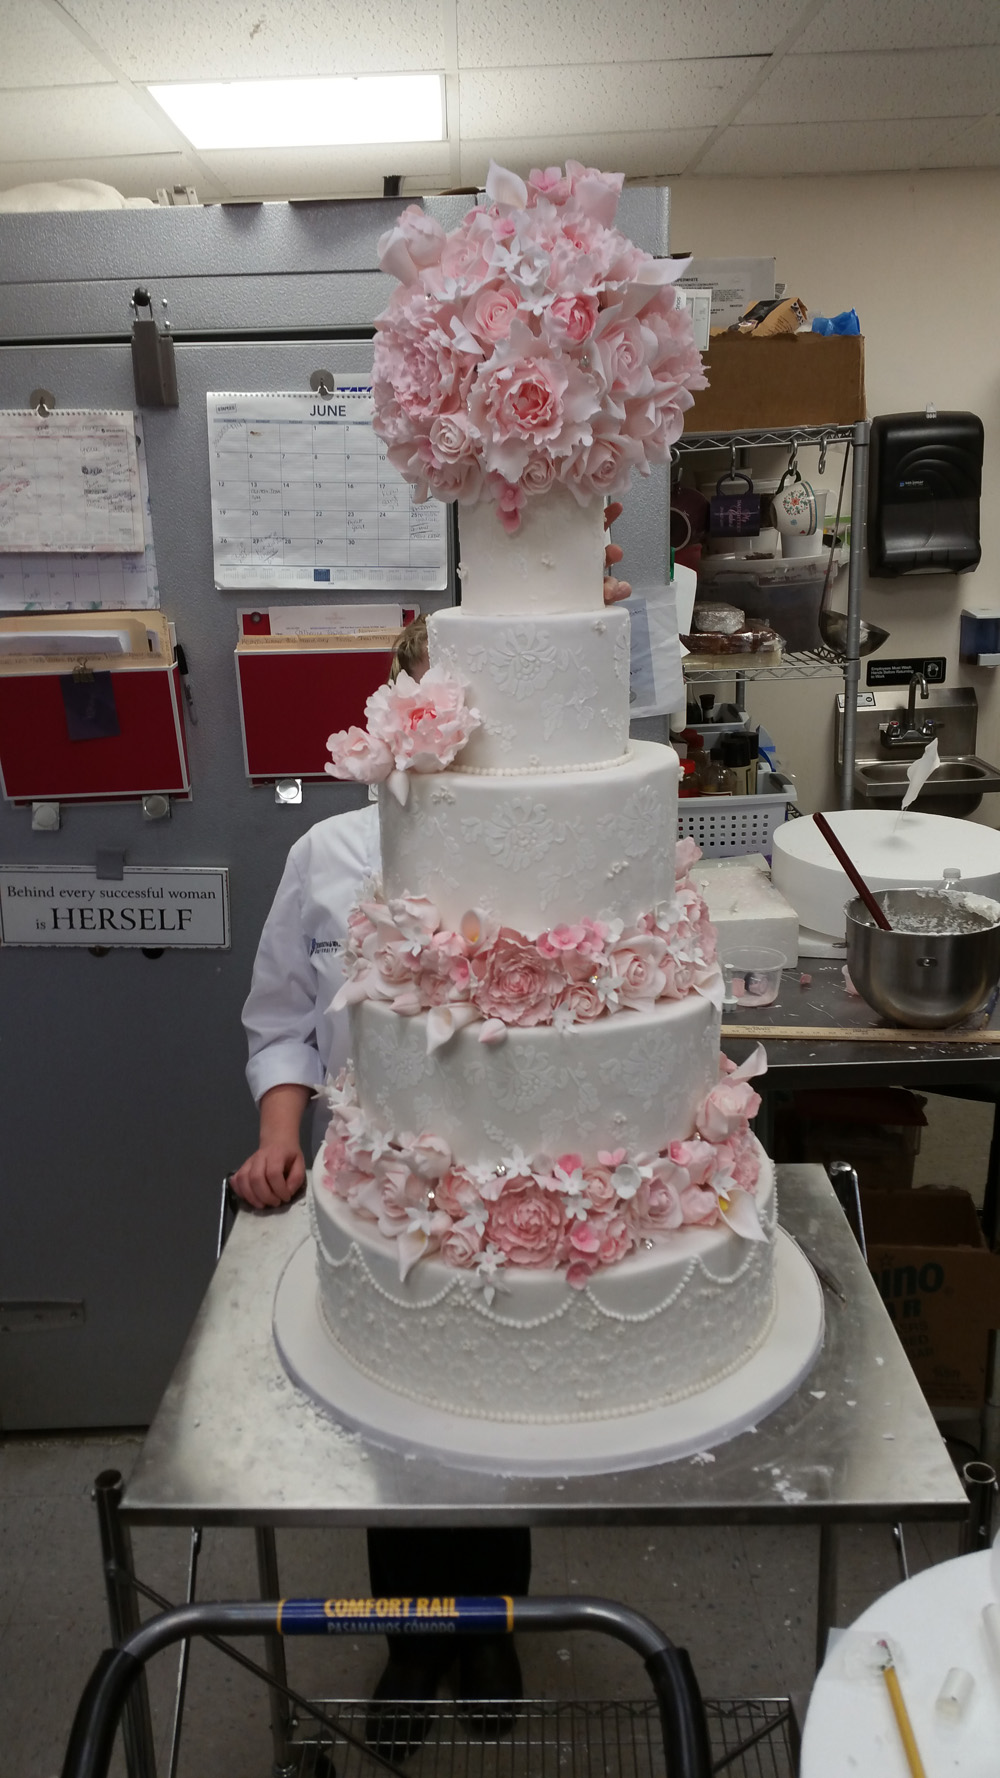 Decorative stages of wedding cake by My Daughter's Cakes Dumont NJ